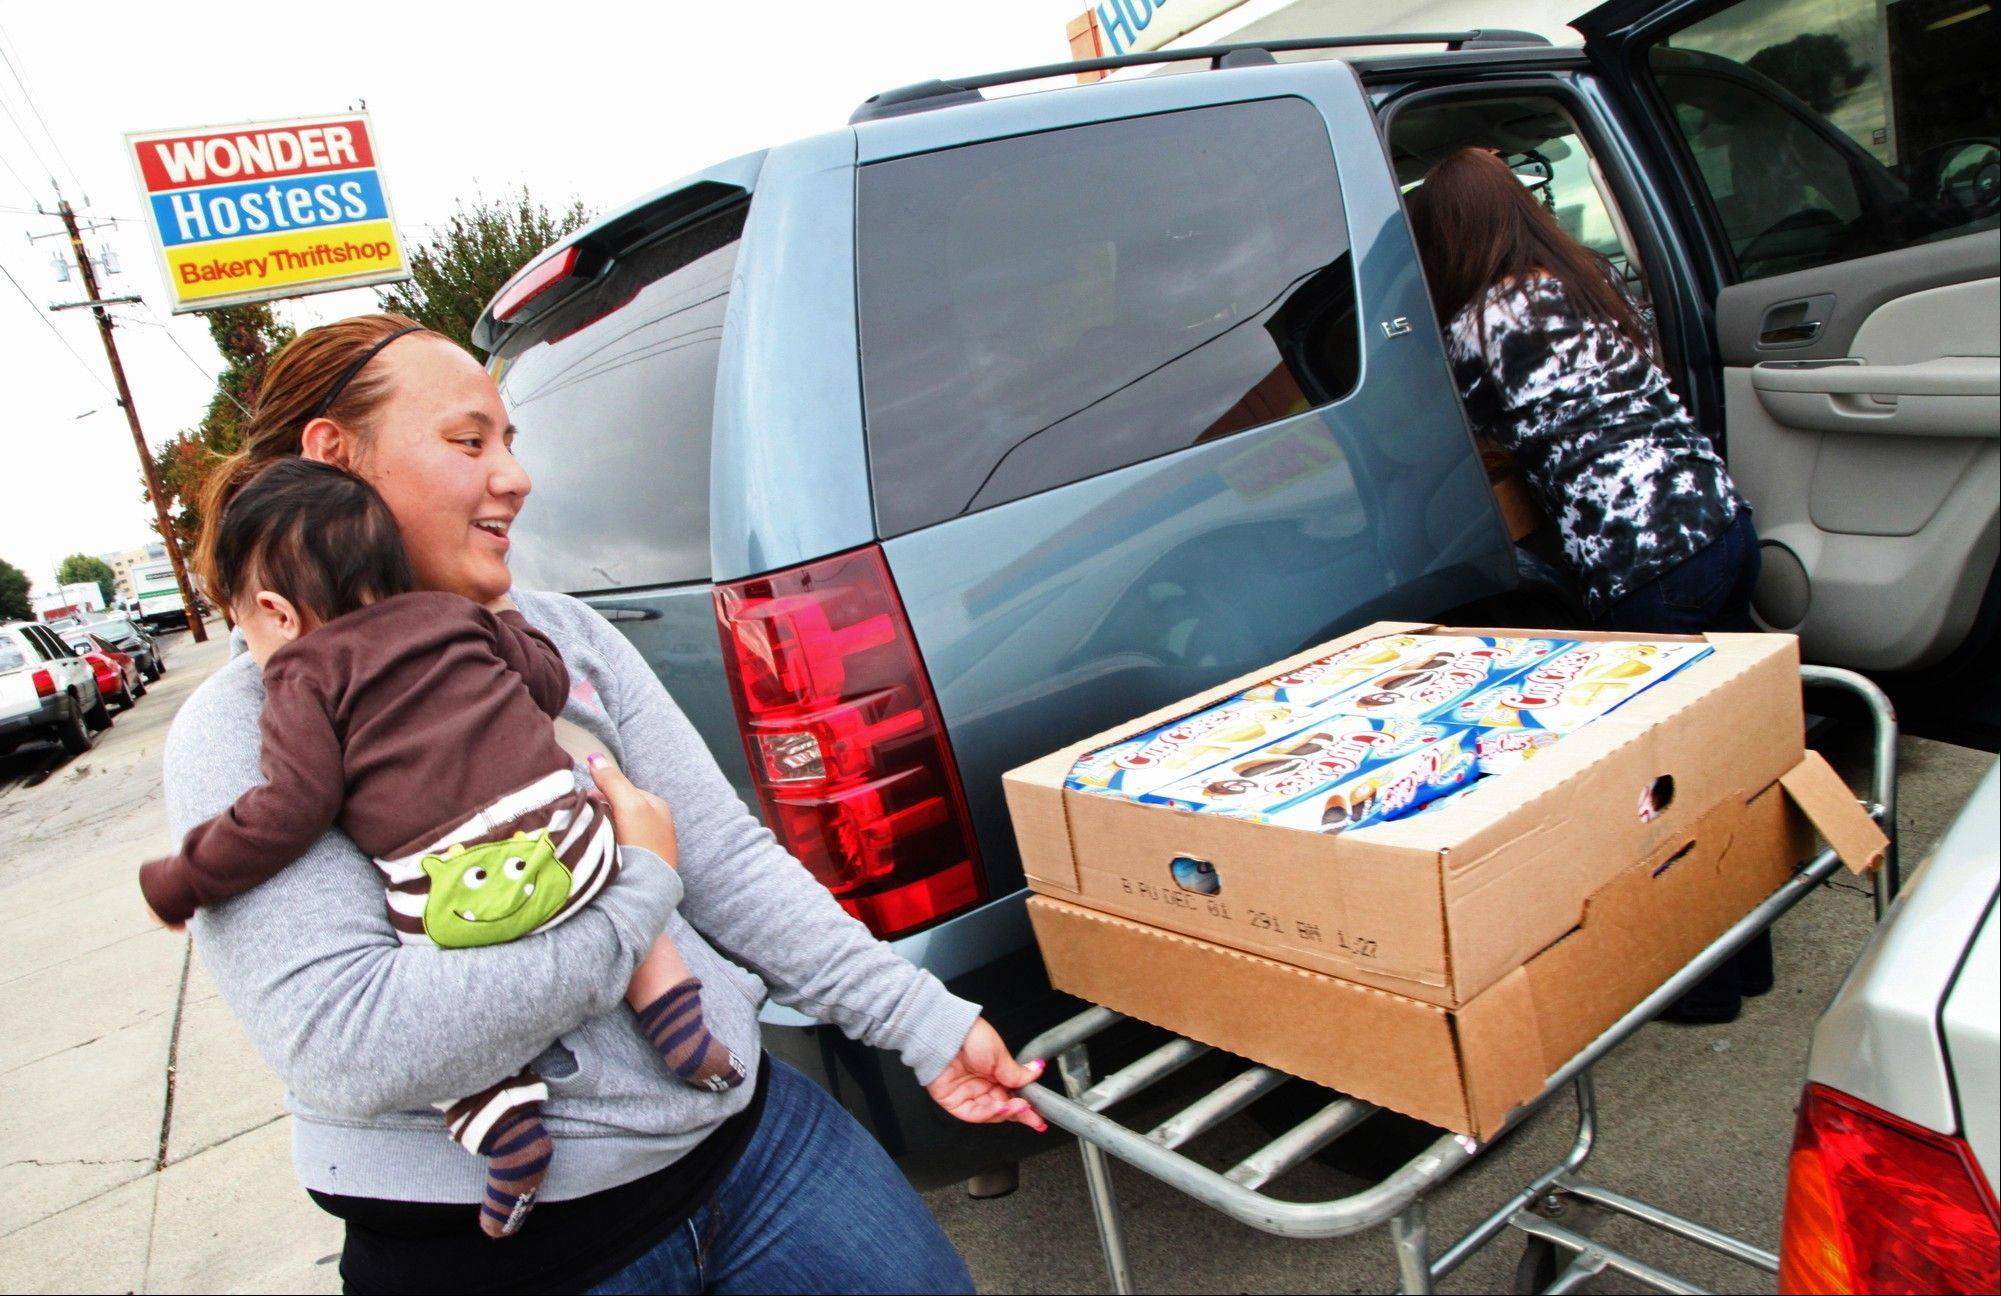 Vanessa Fifita, from San Leandro, left, puts boxes of Hostess products into her car Friday with the help of a worker outside the Hostess Bakery Thriftshop in San Leandro, Calif. on Friday, Nov. 16, 2012. With the announcement that the Hostess bakery is join out of business, Fifita�s friends and relatives urged her to go to the thrift shop to pick up as many of the Hostess bakery products as possible.